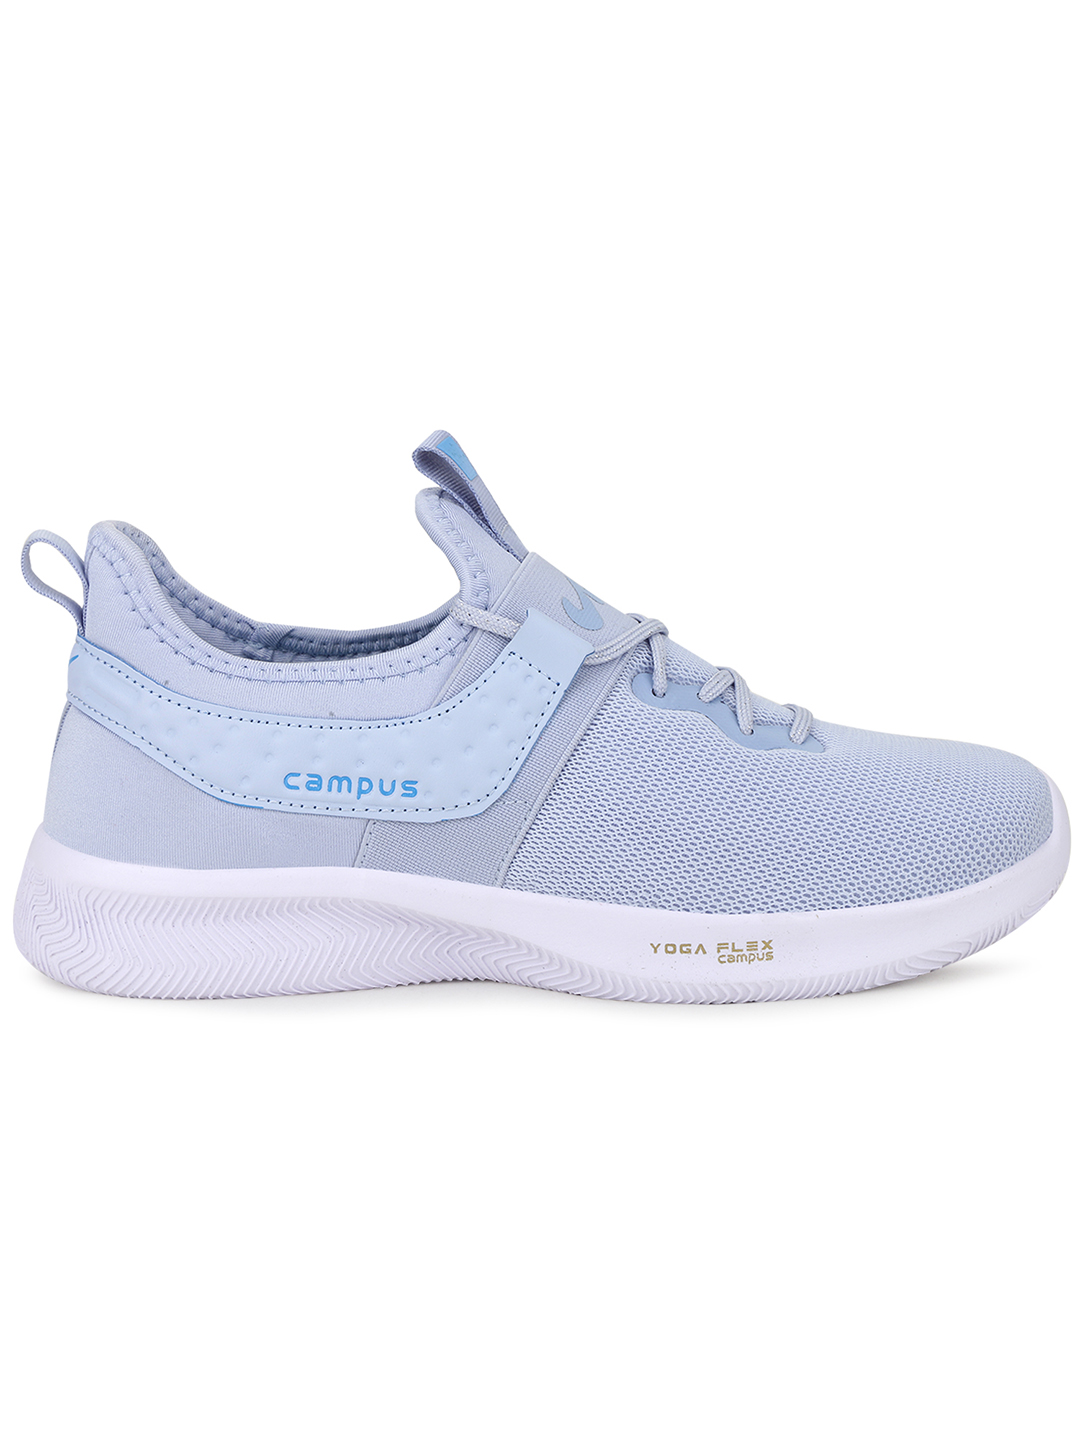 Campus Shoes   Grey Sherry Running Shoes